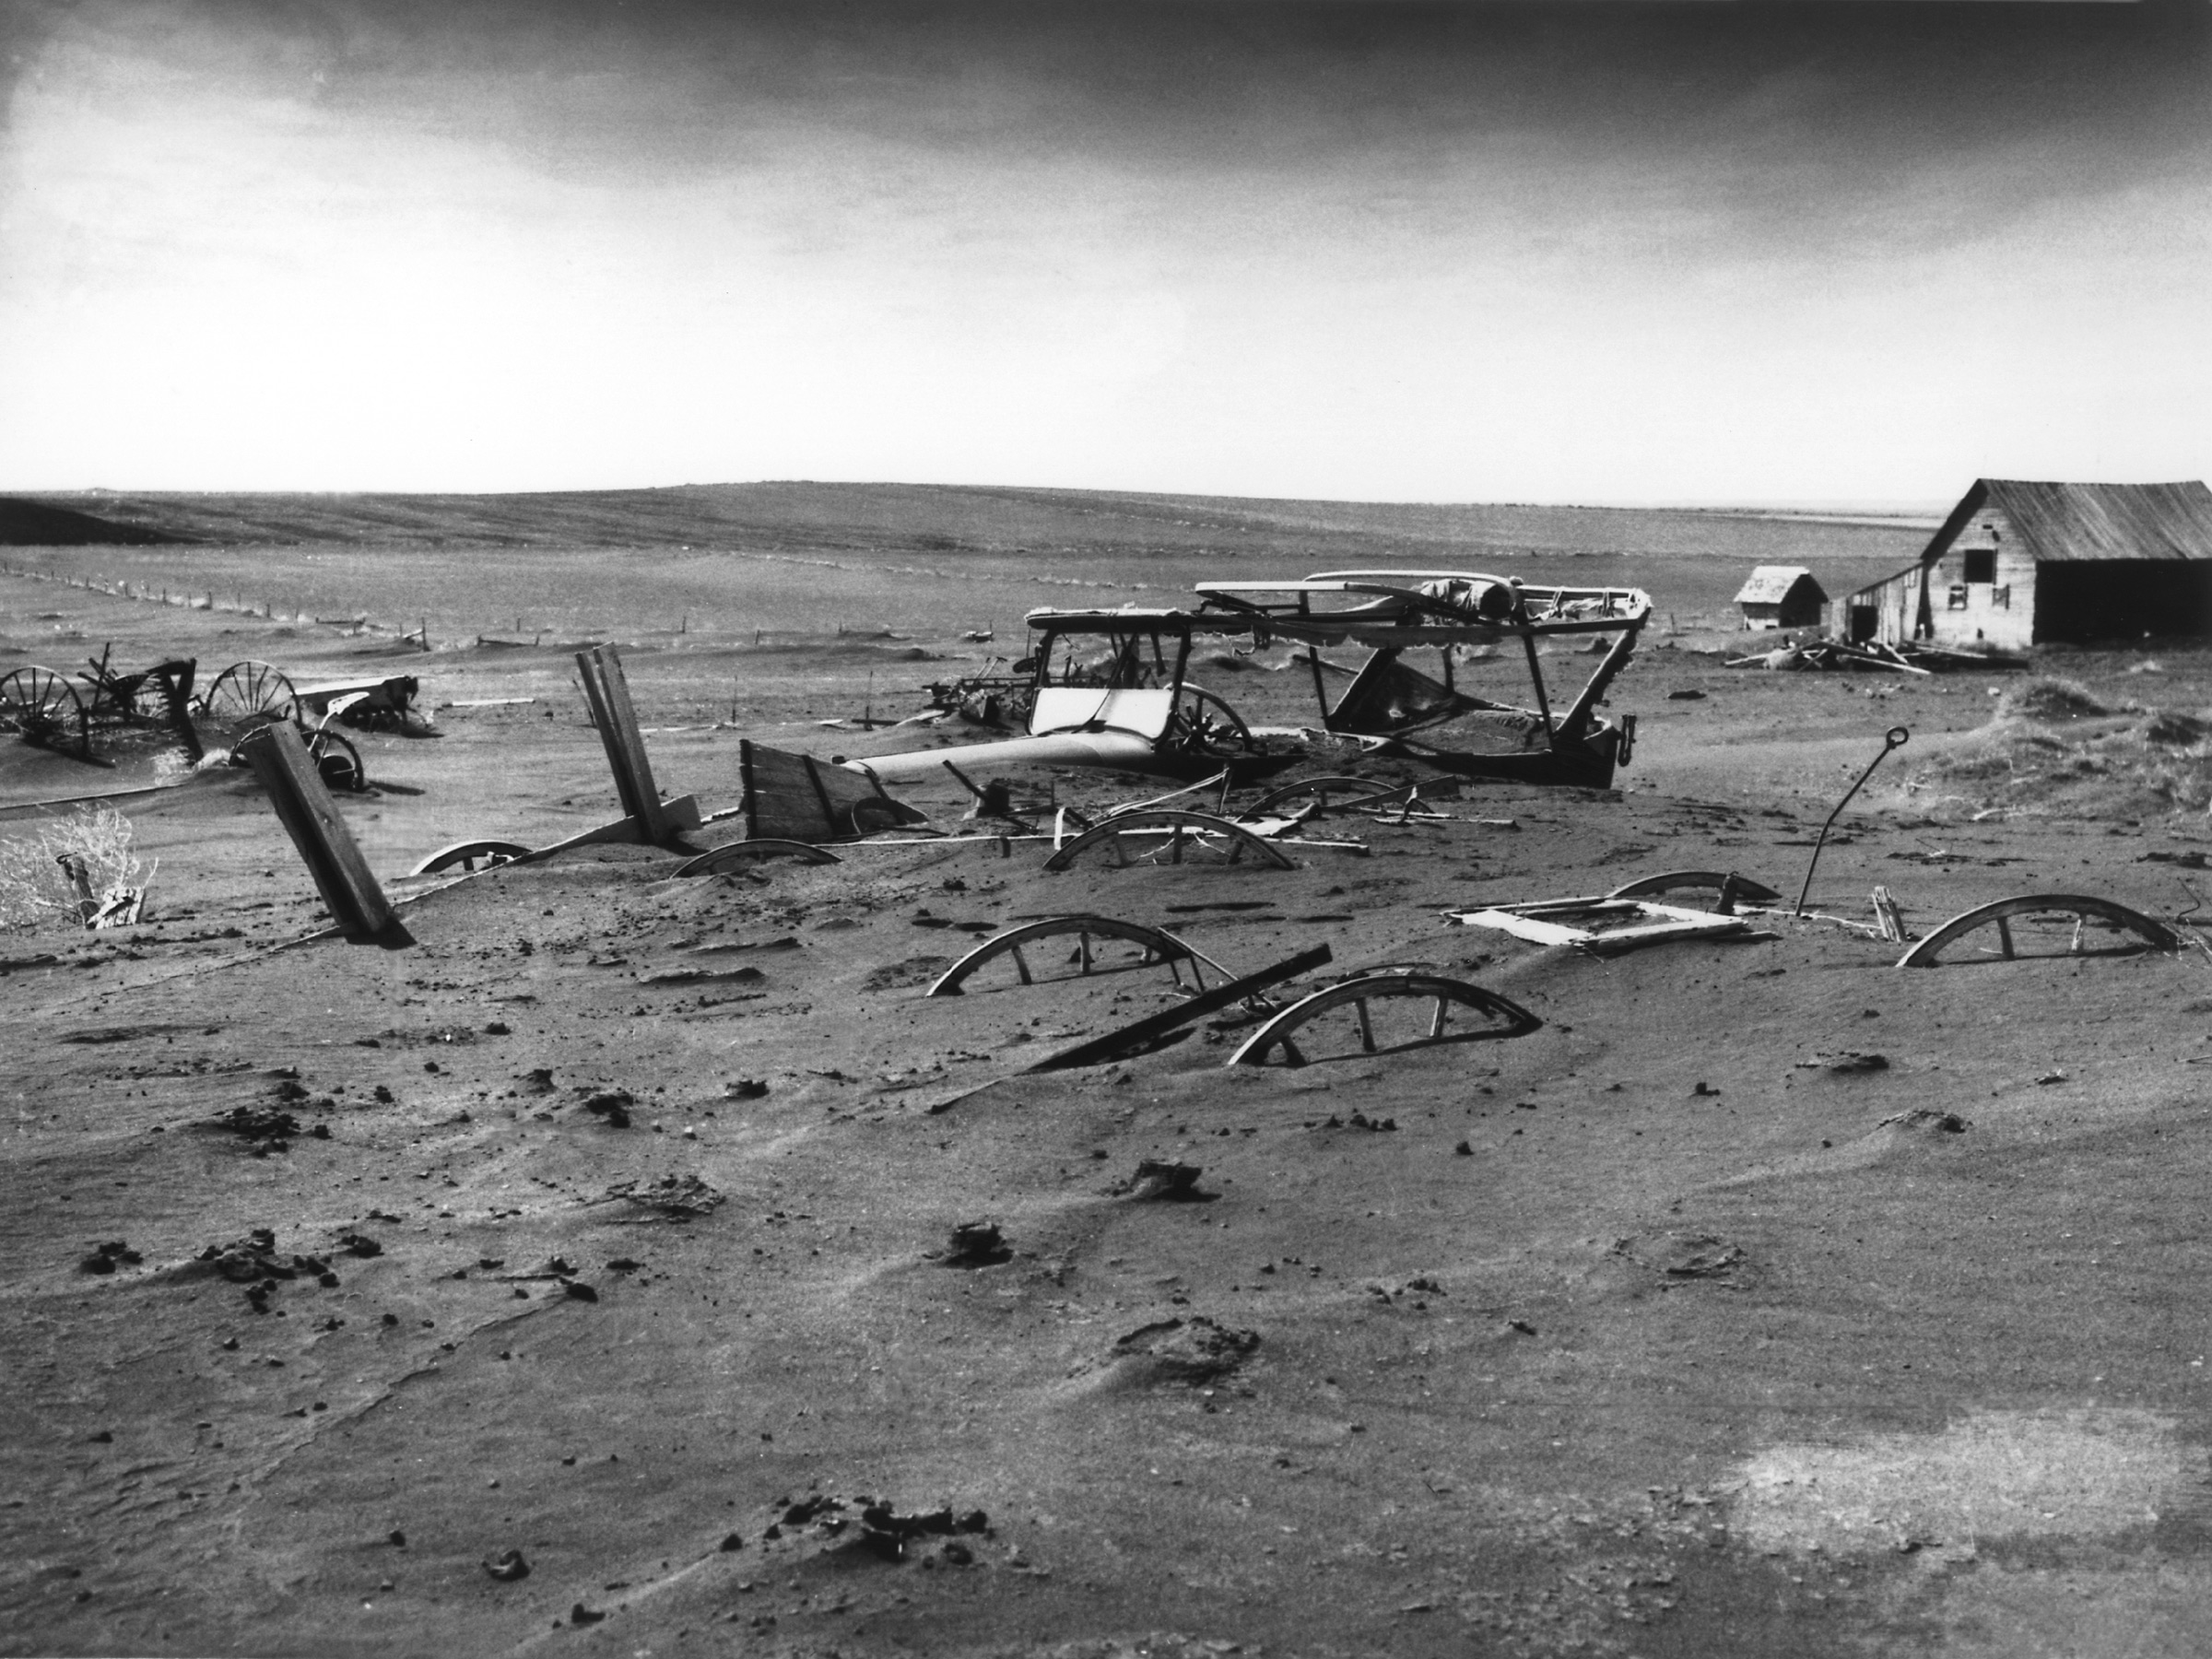 Dust Bowl Dallas South Dakota 1936 image